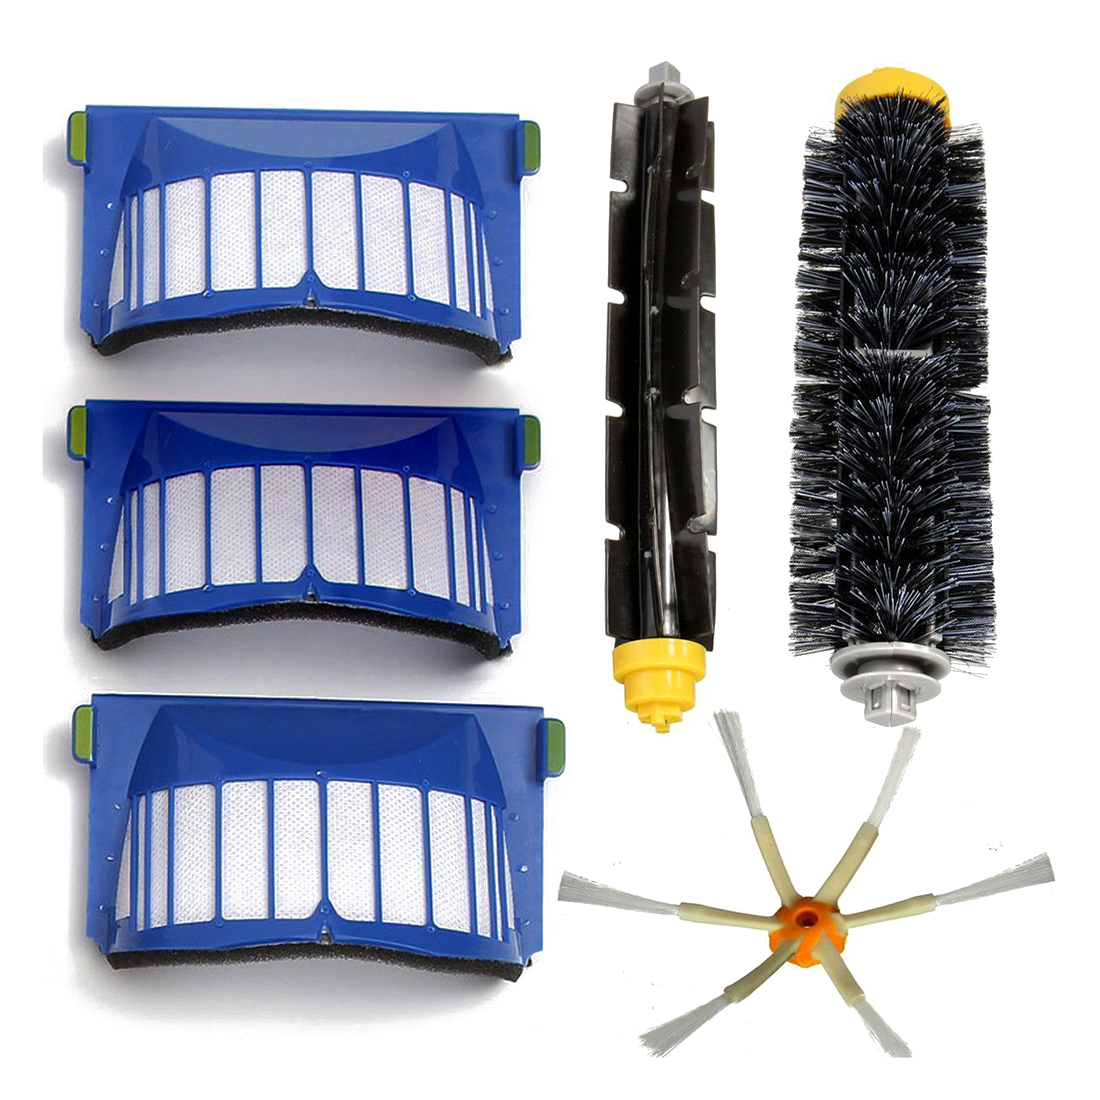 Filter+Brush 3 armed Side for Aero Vac iRobot Roomba 600 Series 620 630 650 6660 aero vac filter bristle brush flexible beater brush 3 armed side brush tool for irobot roomba 600 series 620 630 650 660